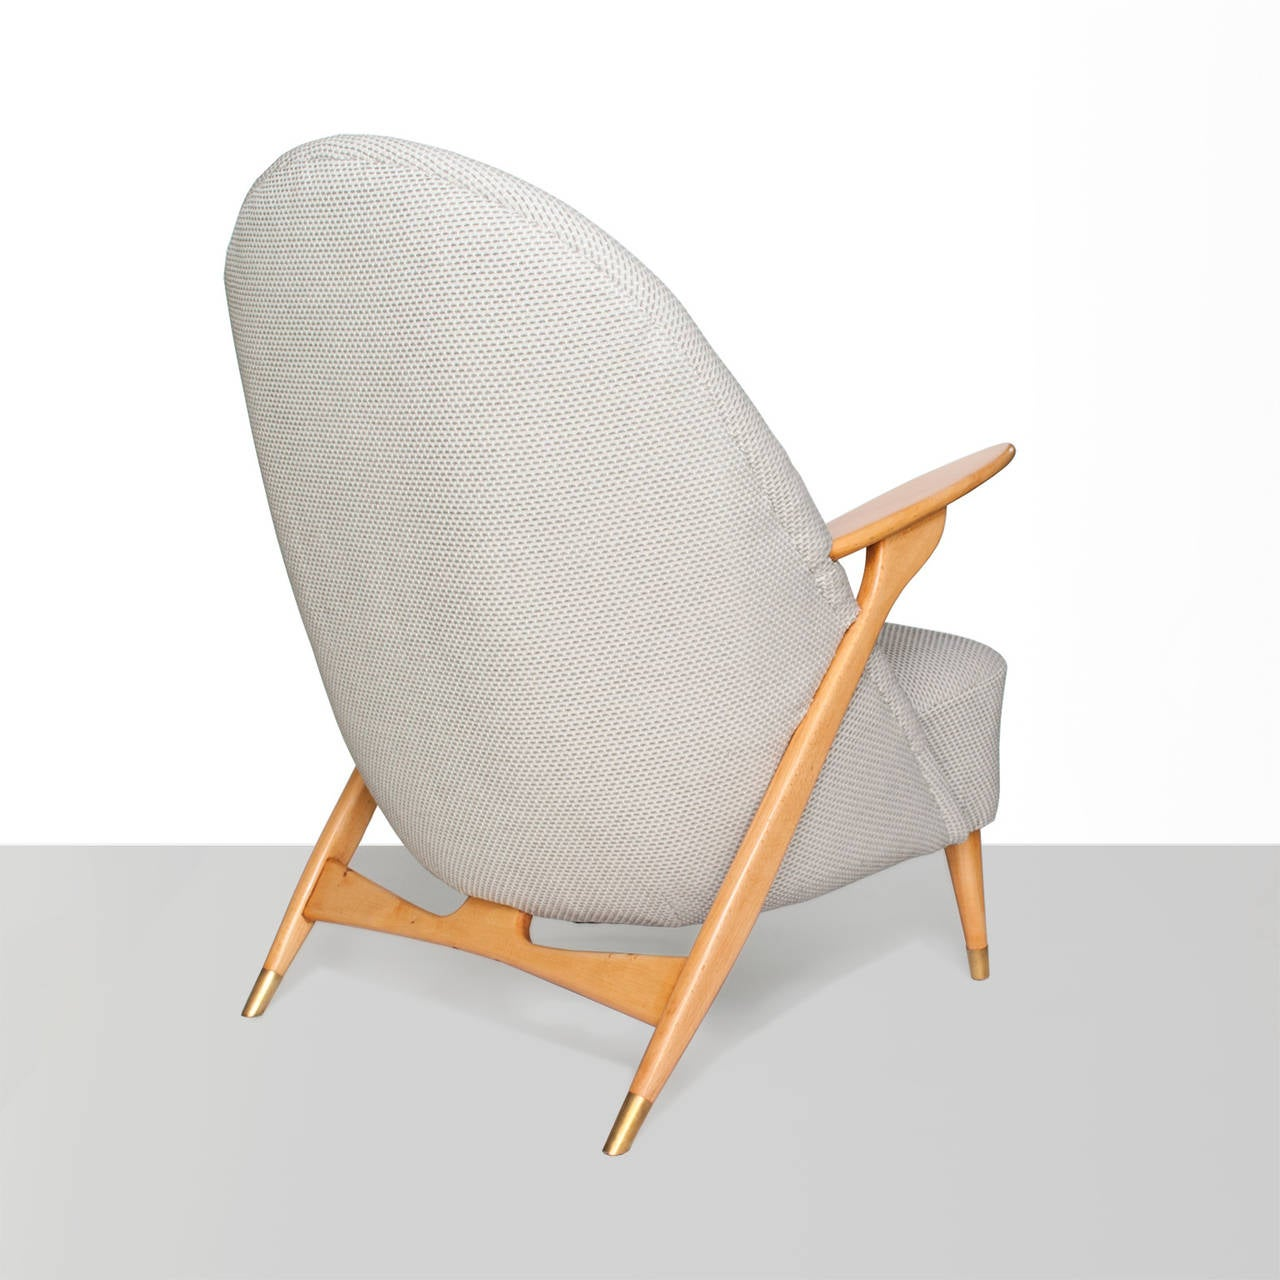 Scandinavian Modern Lounge Chair by Svante Skogh for Säffle Möbelfabrik 4